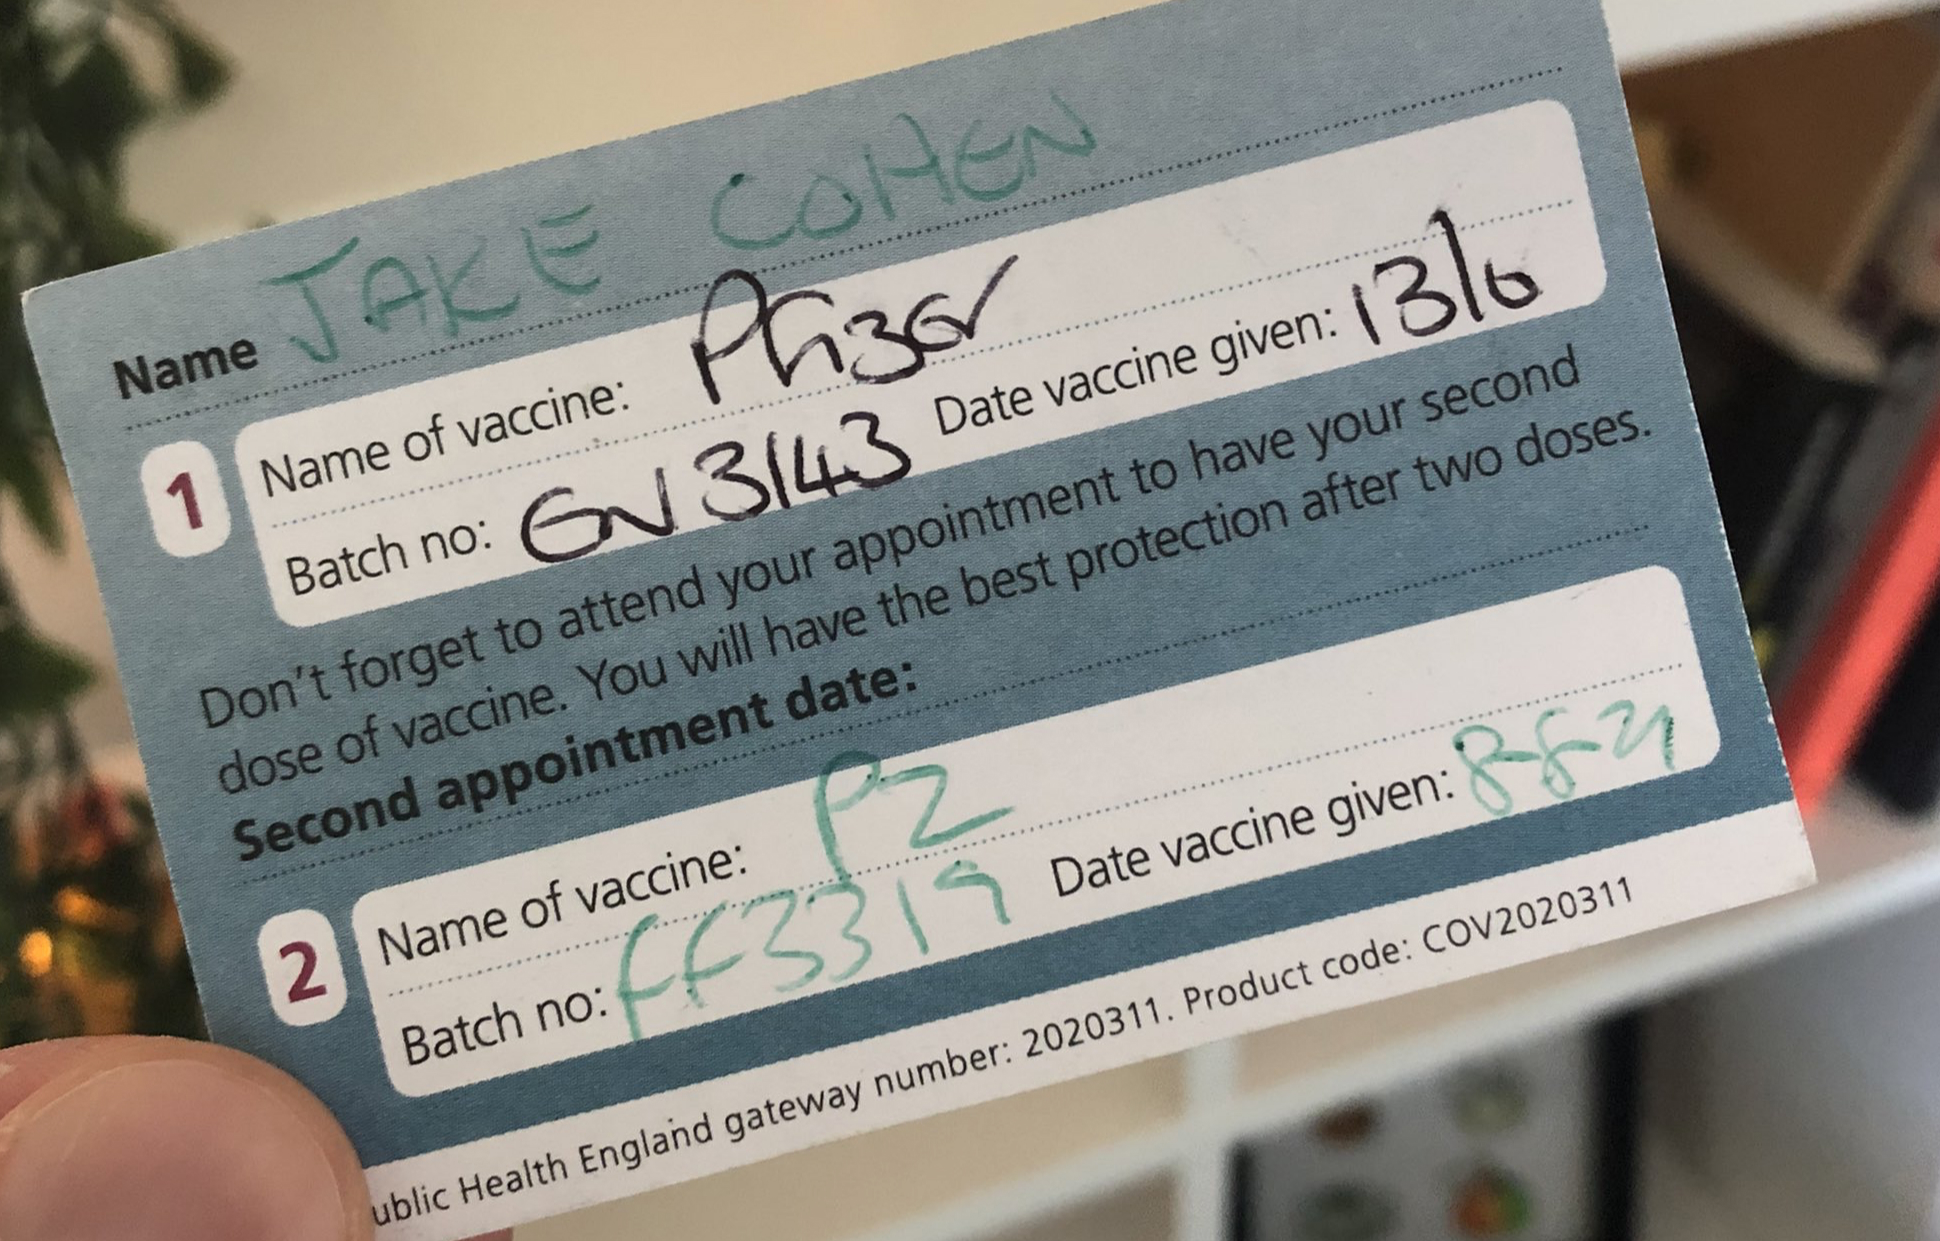 A photo of a Covid-19 vaccine appointment card